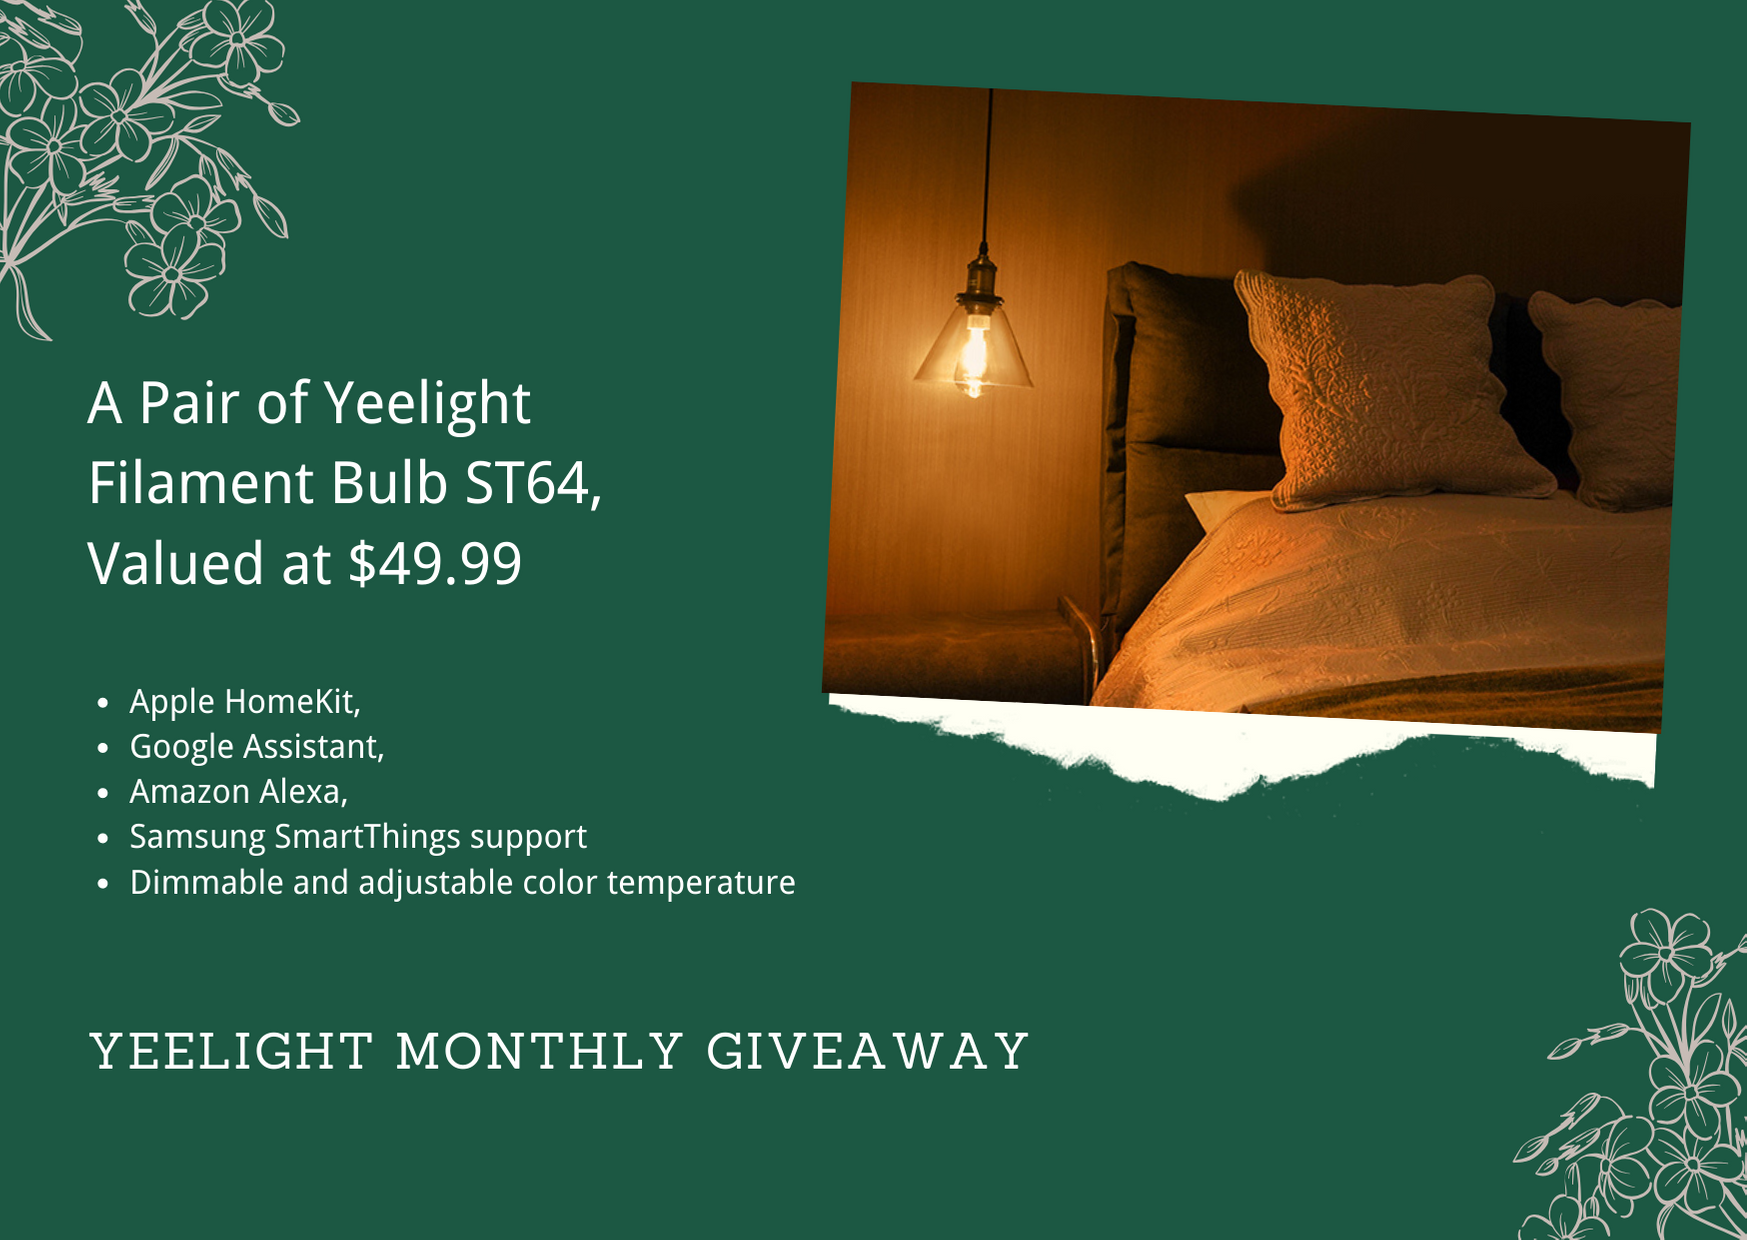 Win A Pair of Newly Launched Yeelight Filament Bulb ST64 Giveaway Image